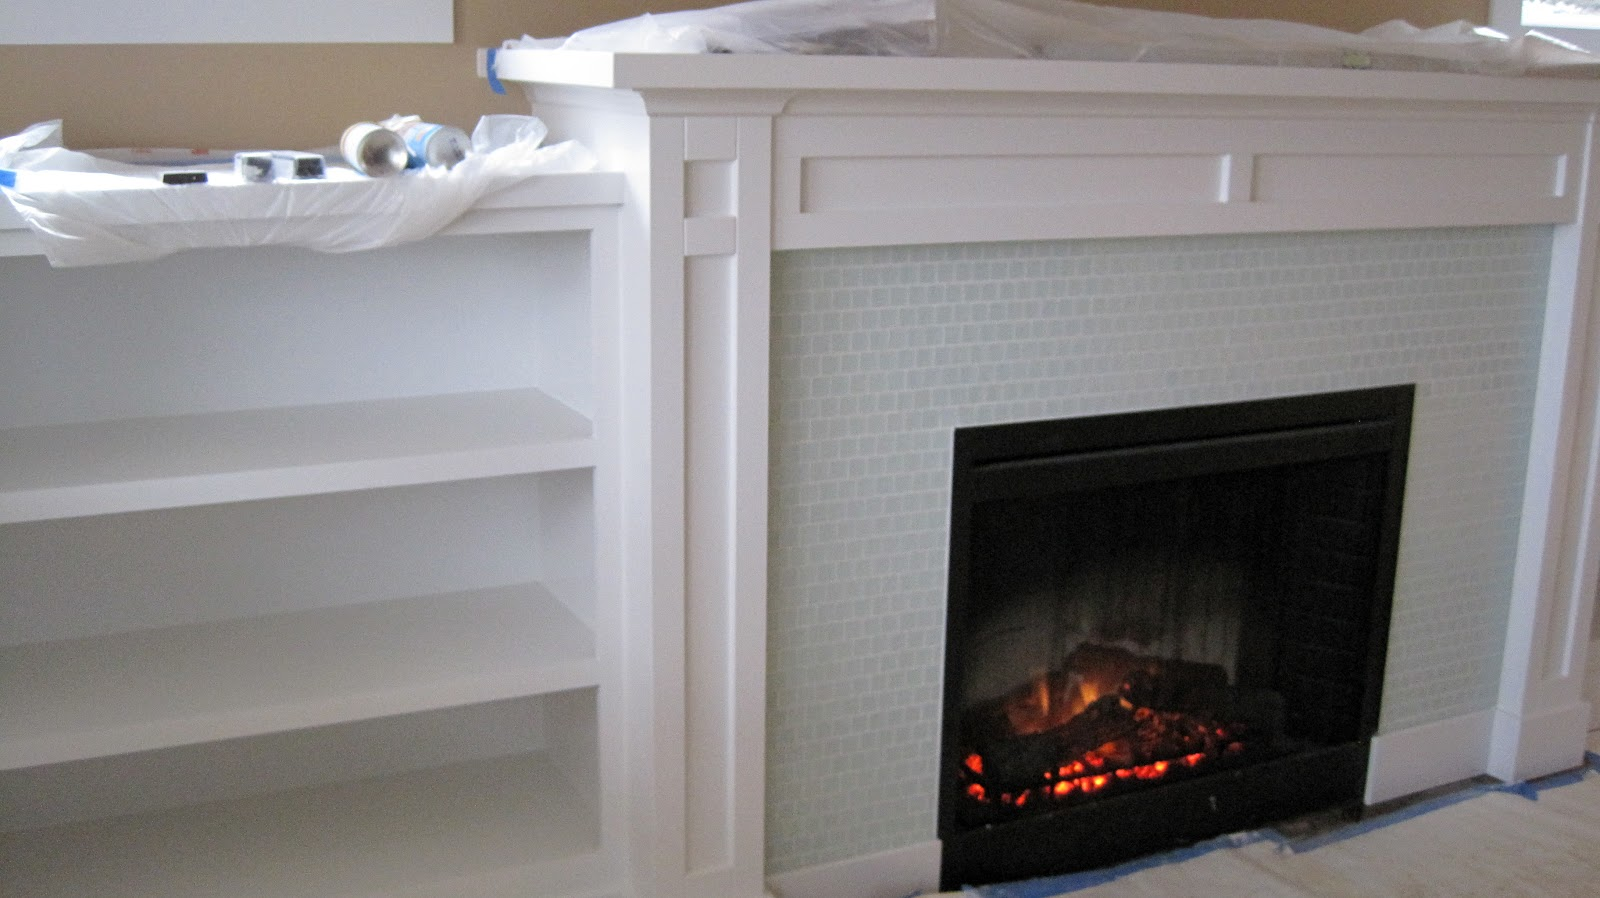 I Married a Tree Hugger: Built in Fireplace with Shelves